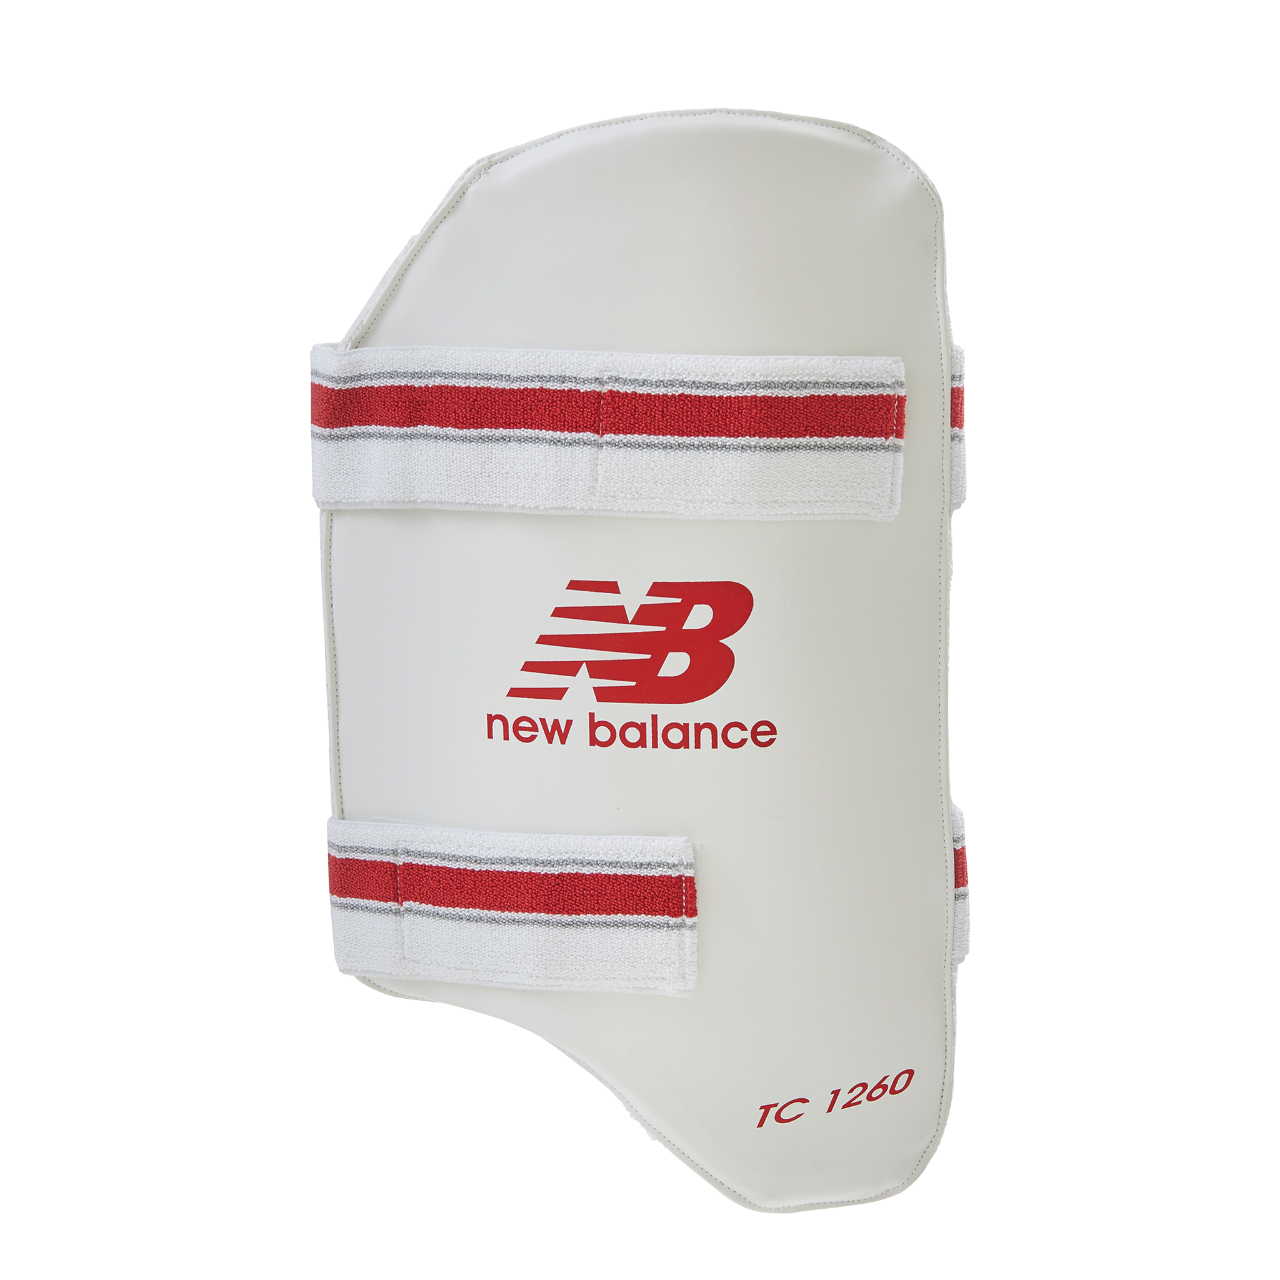 2019 New Balance TC 1260 Thigh Guard